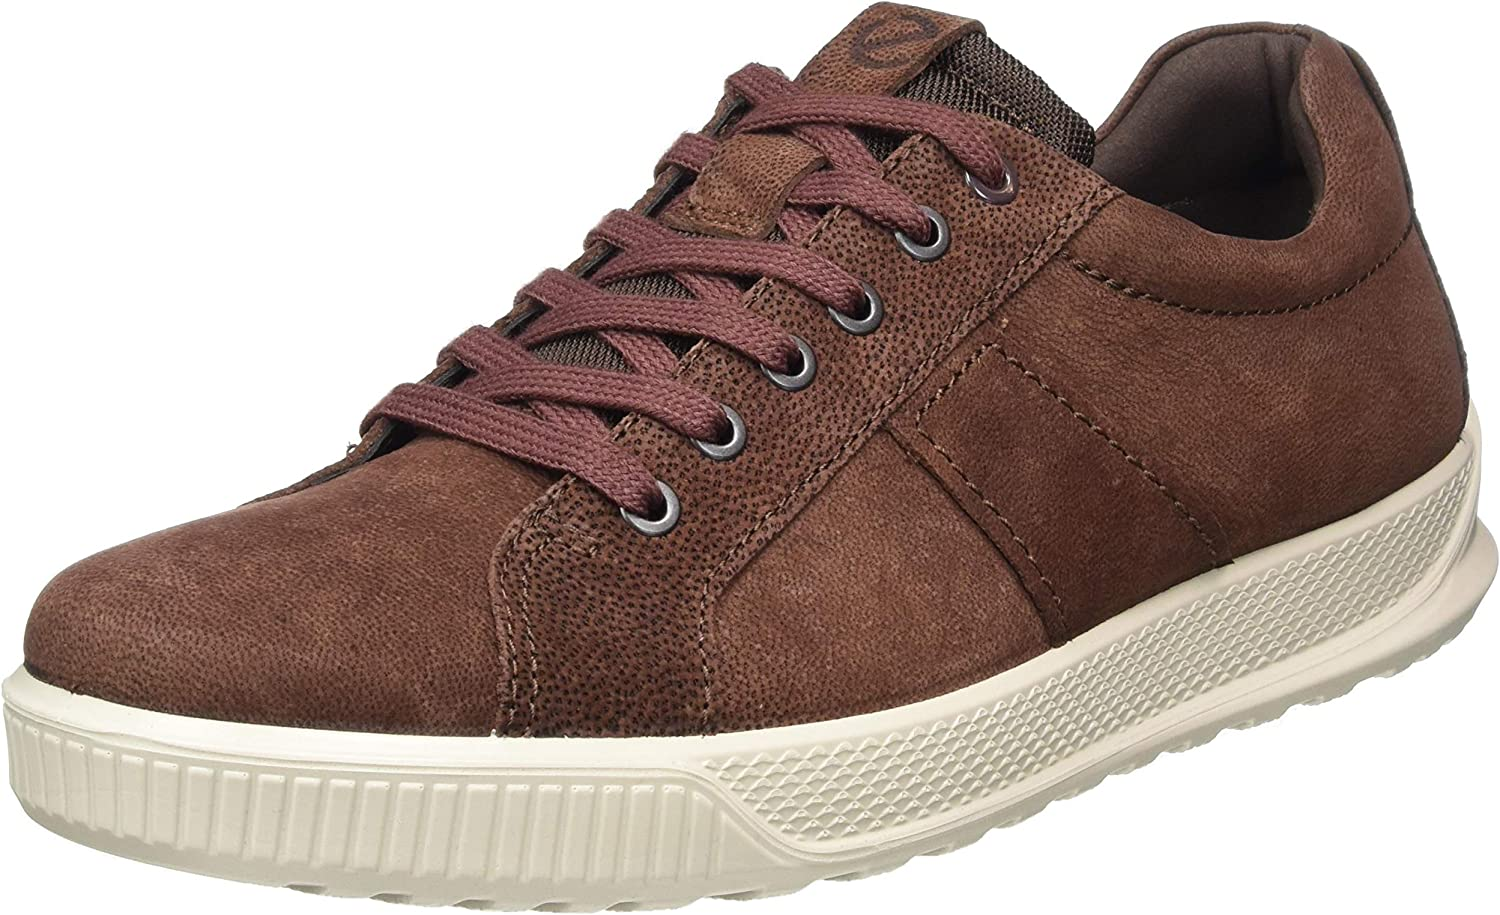 ECCO Men's Low-Top 9.5 Sneakers Fixed price for sale Year-end gift